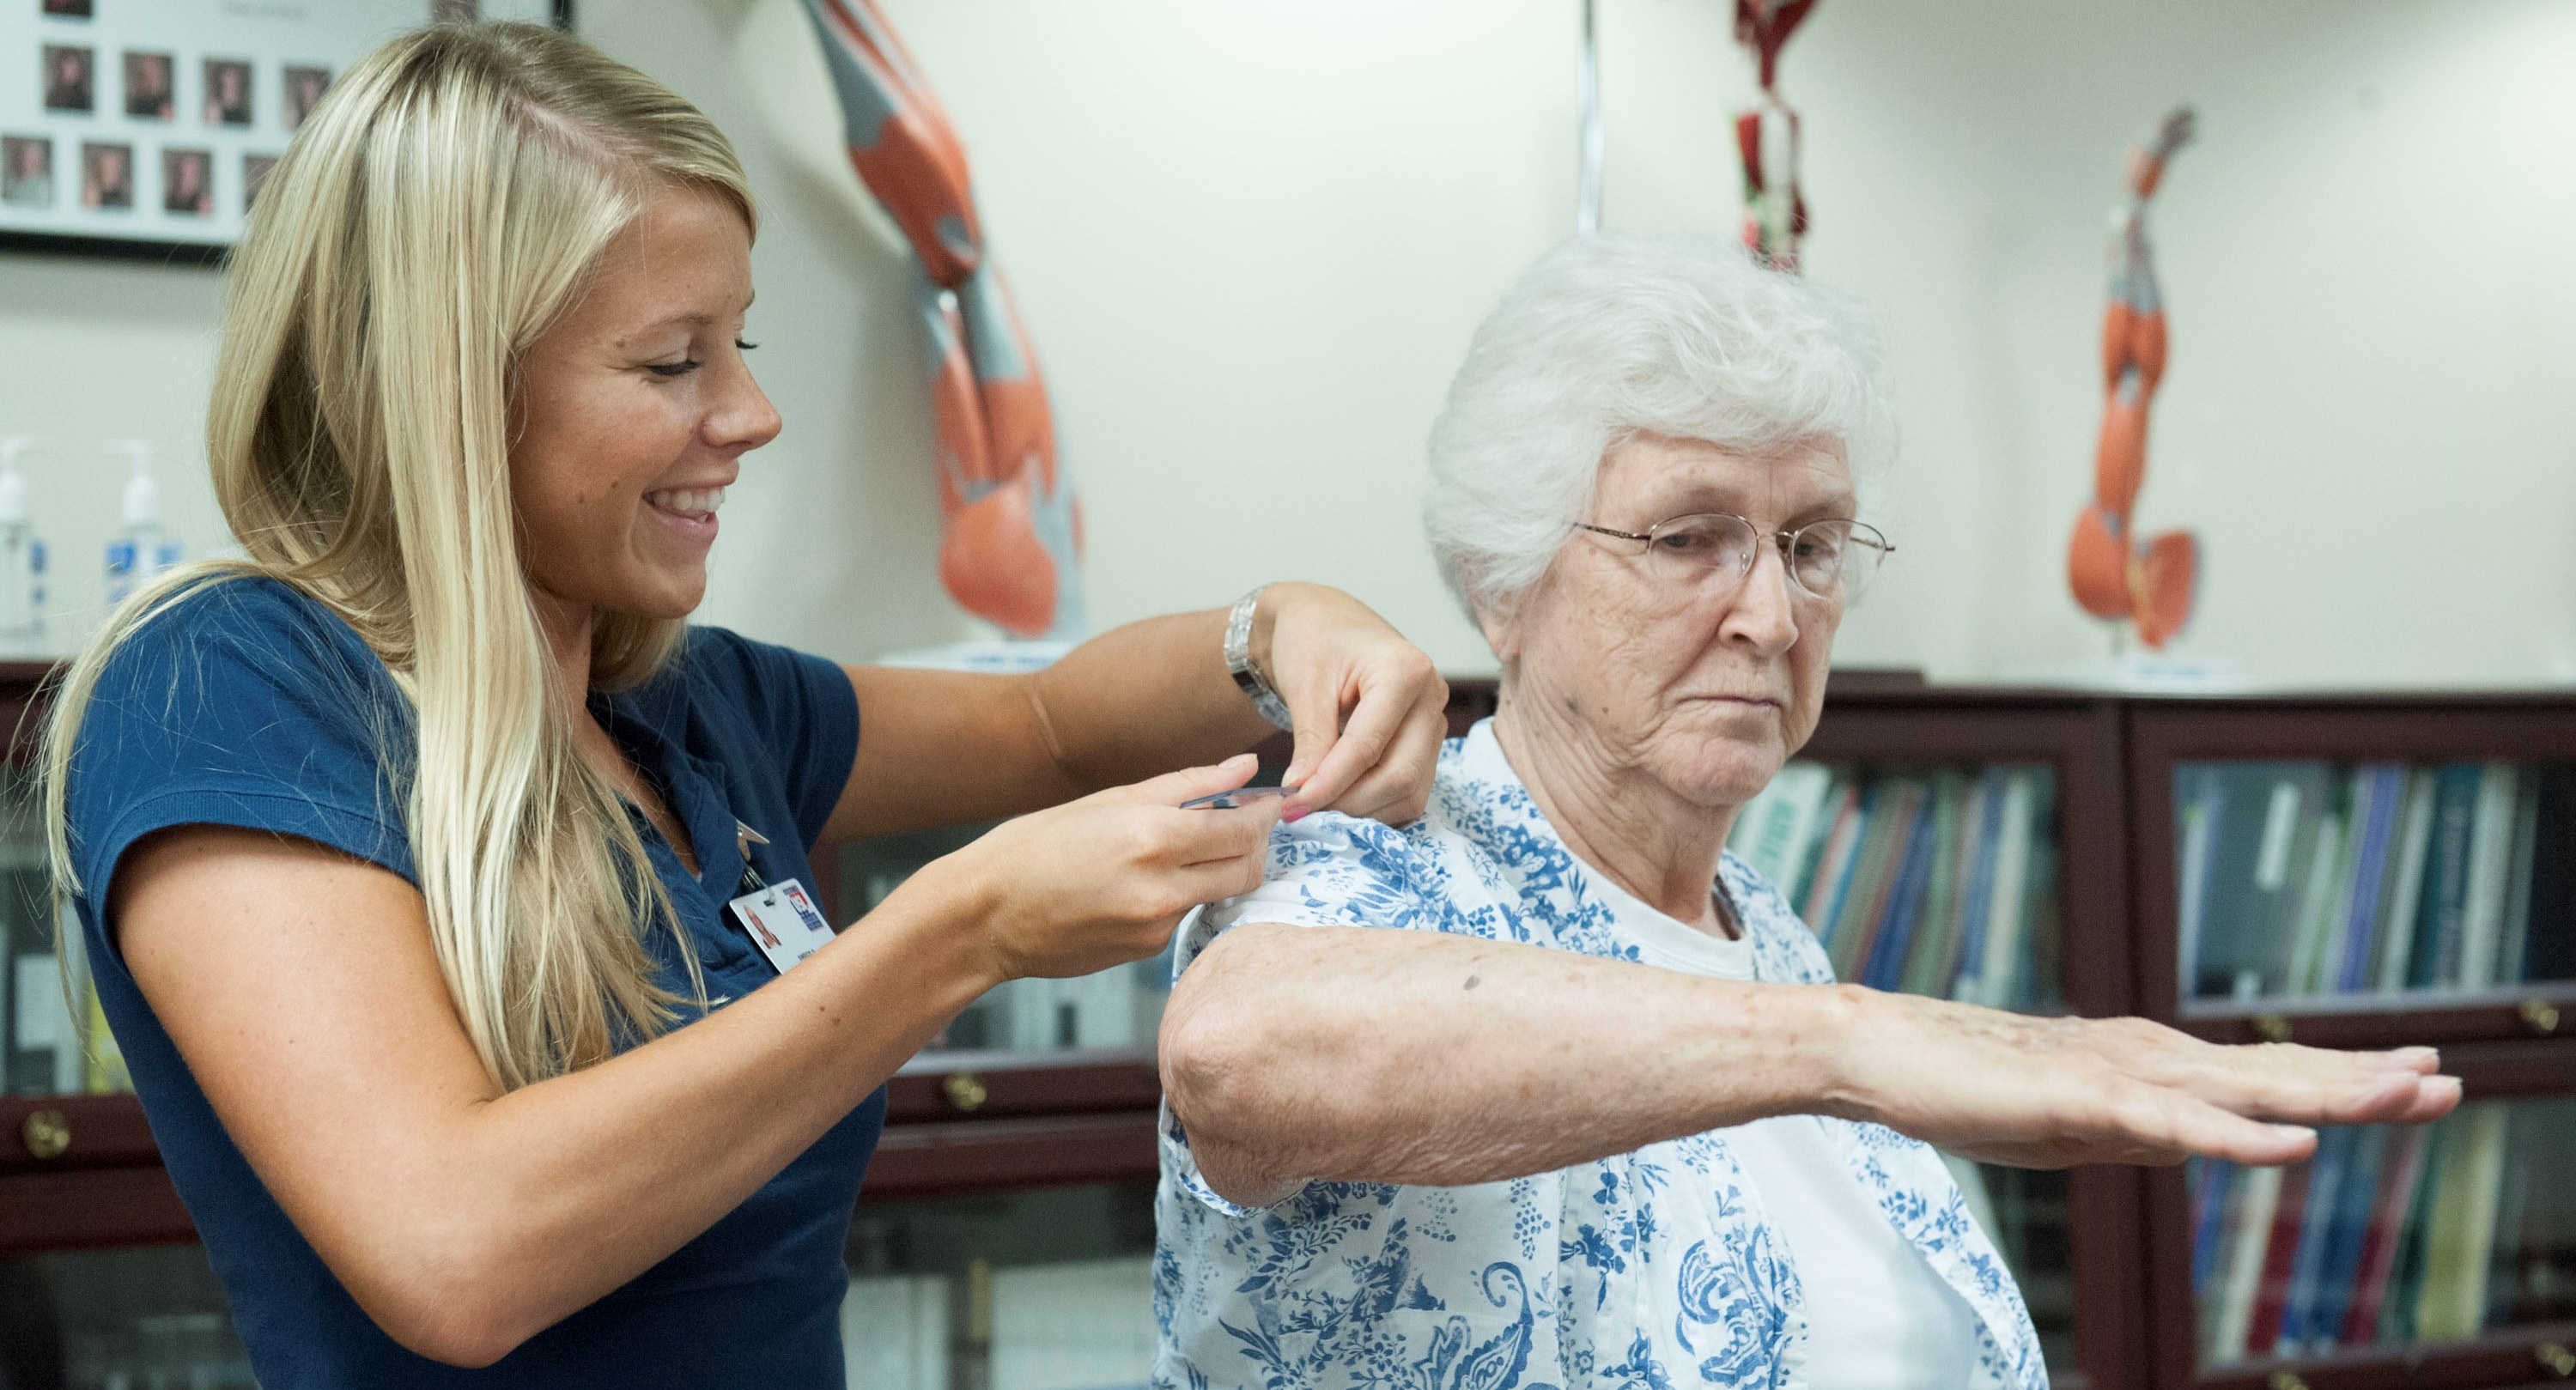 occupational therapy assistant program at university of southern, Human Body